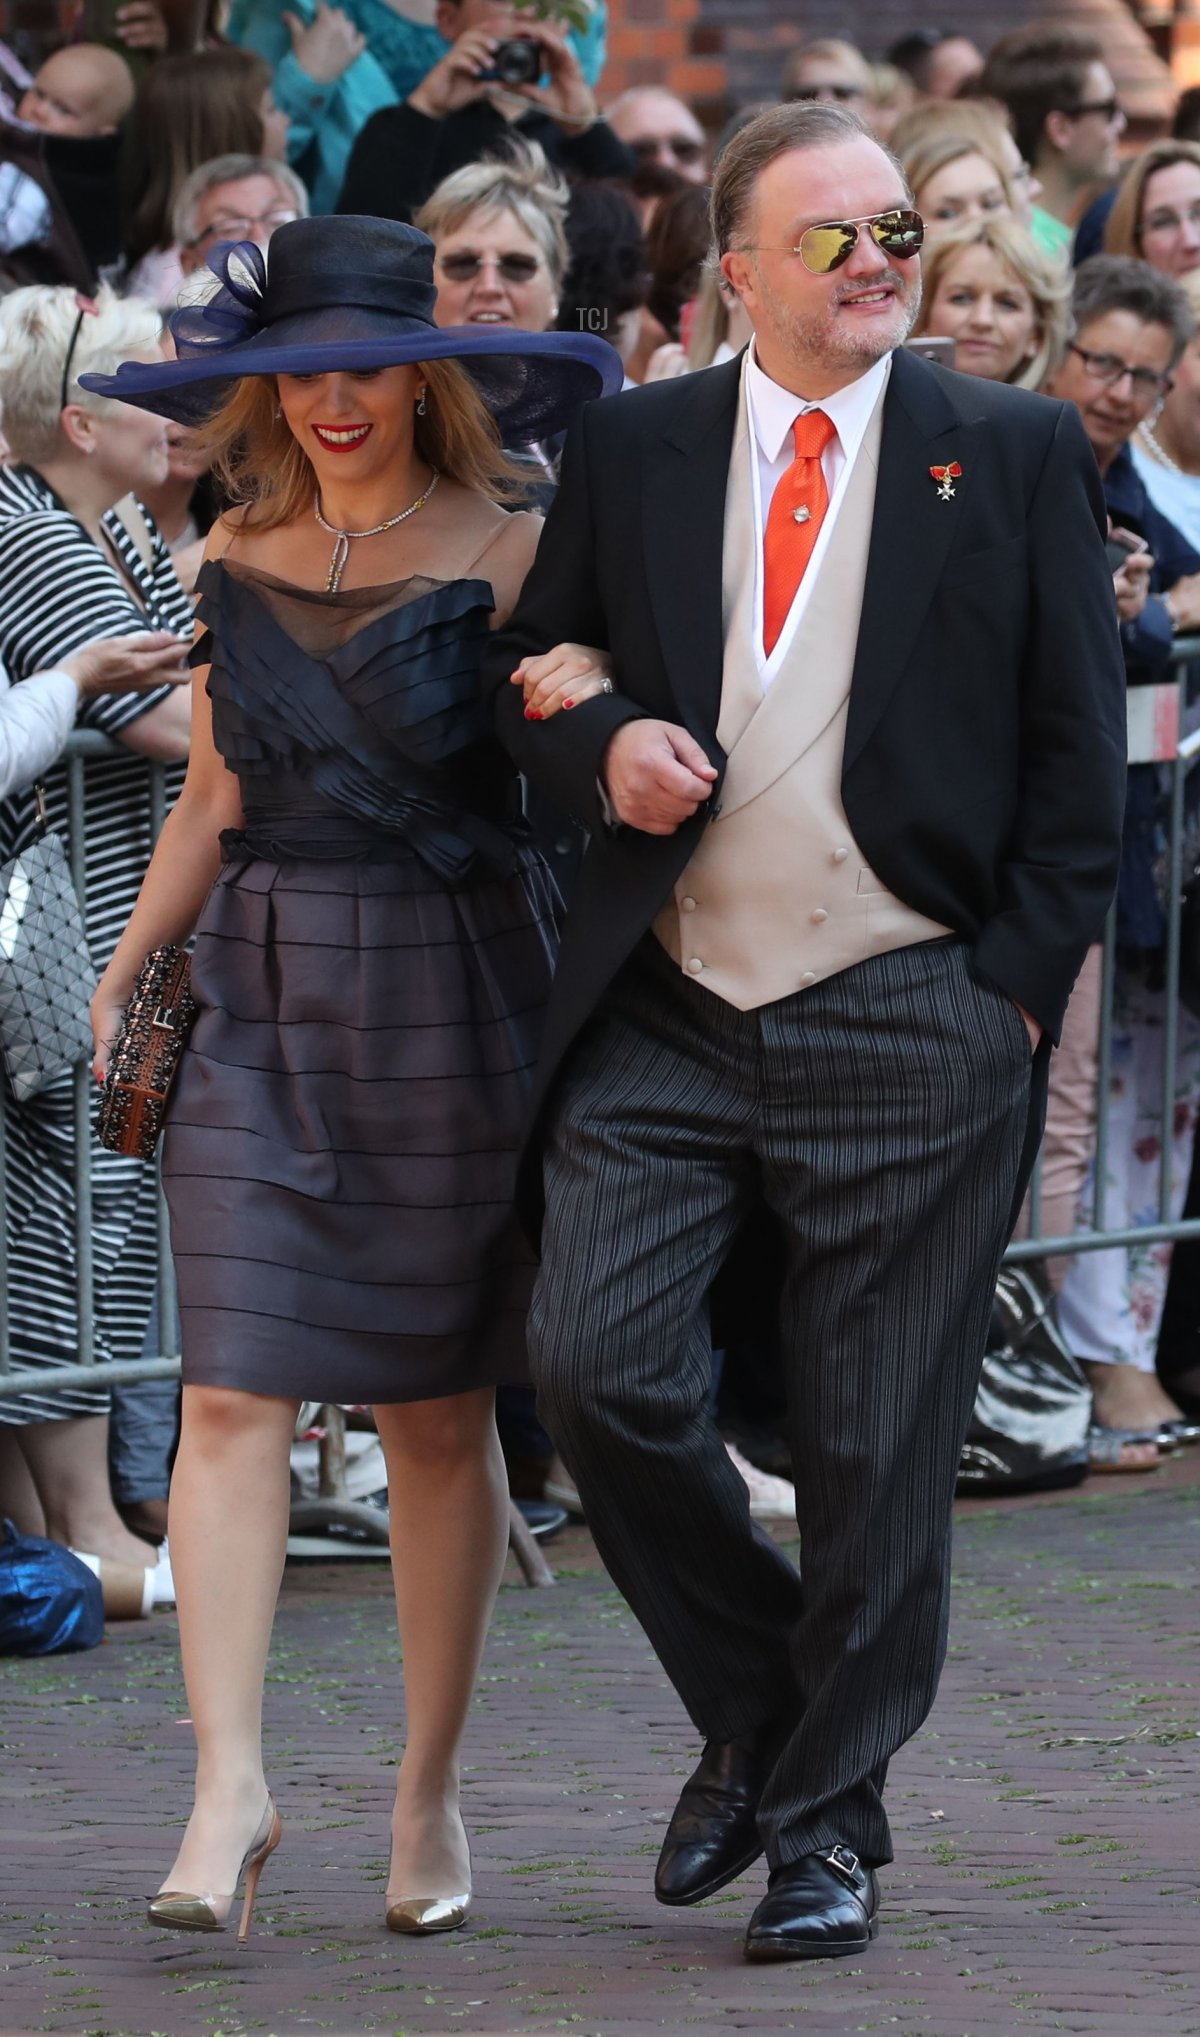 Alexander zu Schaumburg-Lippe (R) and his partner Mahkameh Navabi arrive for the church wedding of Prince Ernst August of Hanover and Ekaterina of Hanover in Hanover, central Germany, on July 8, 2017